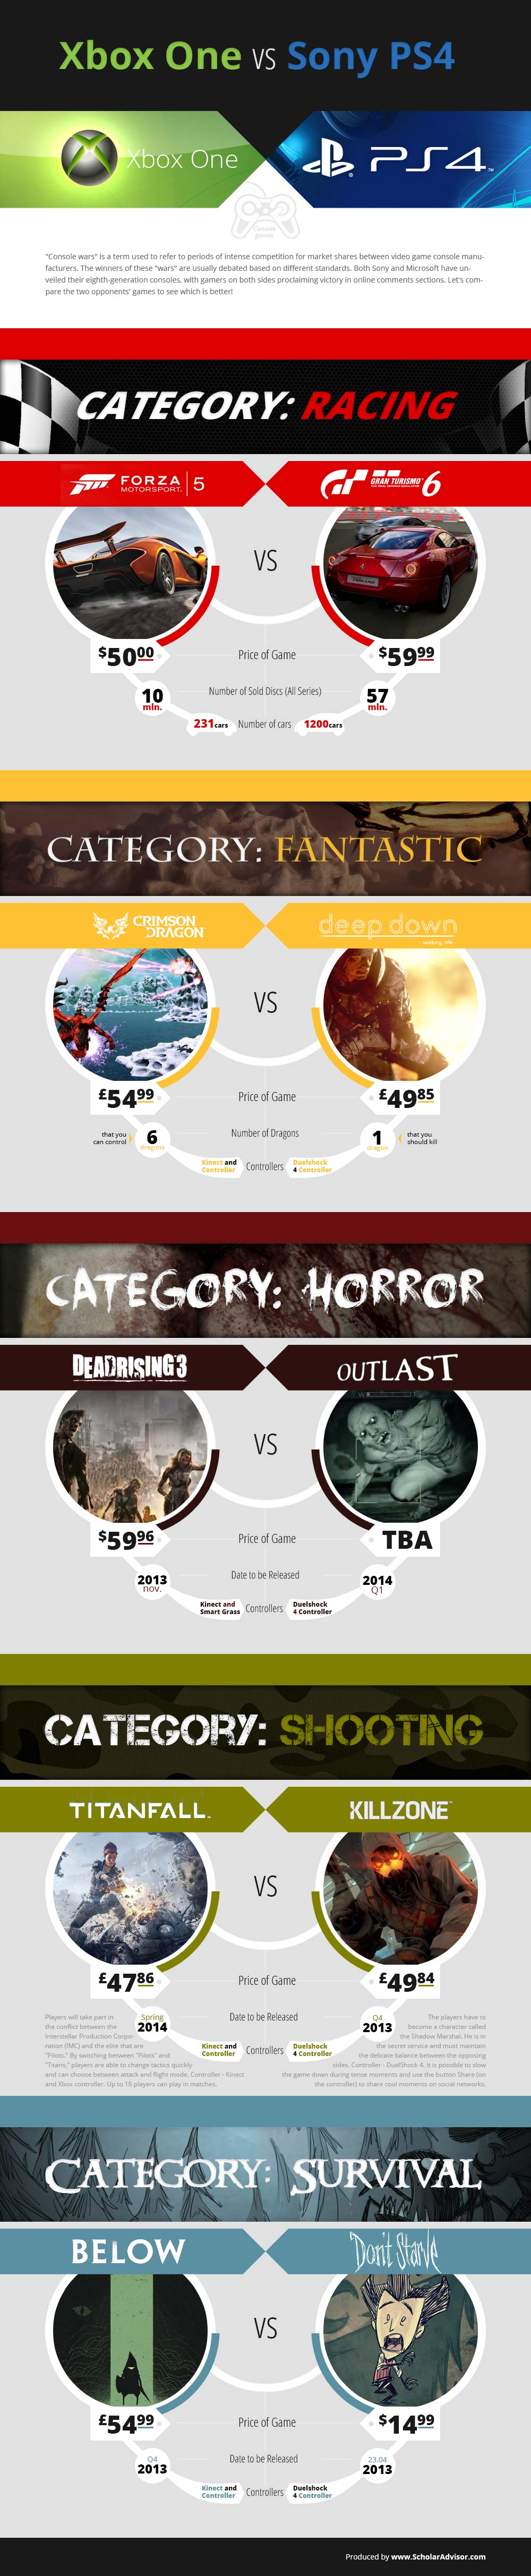 Xbox one vs PS4 Games-Infographic